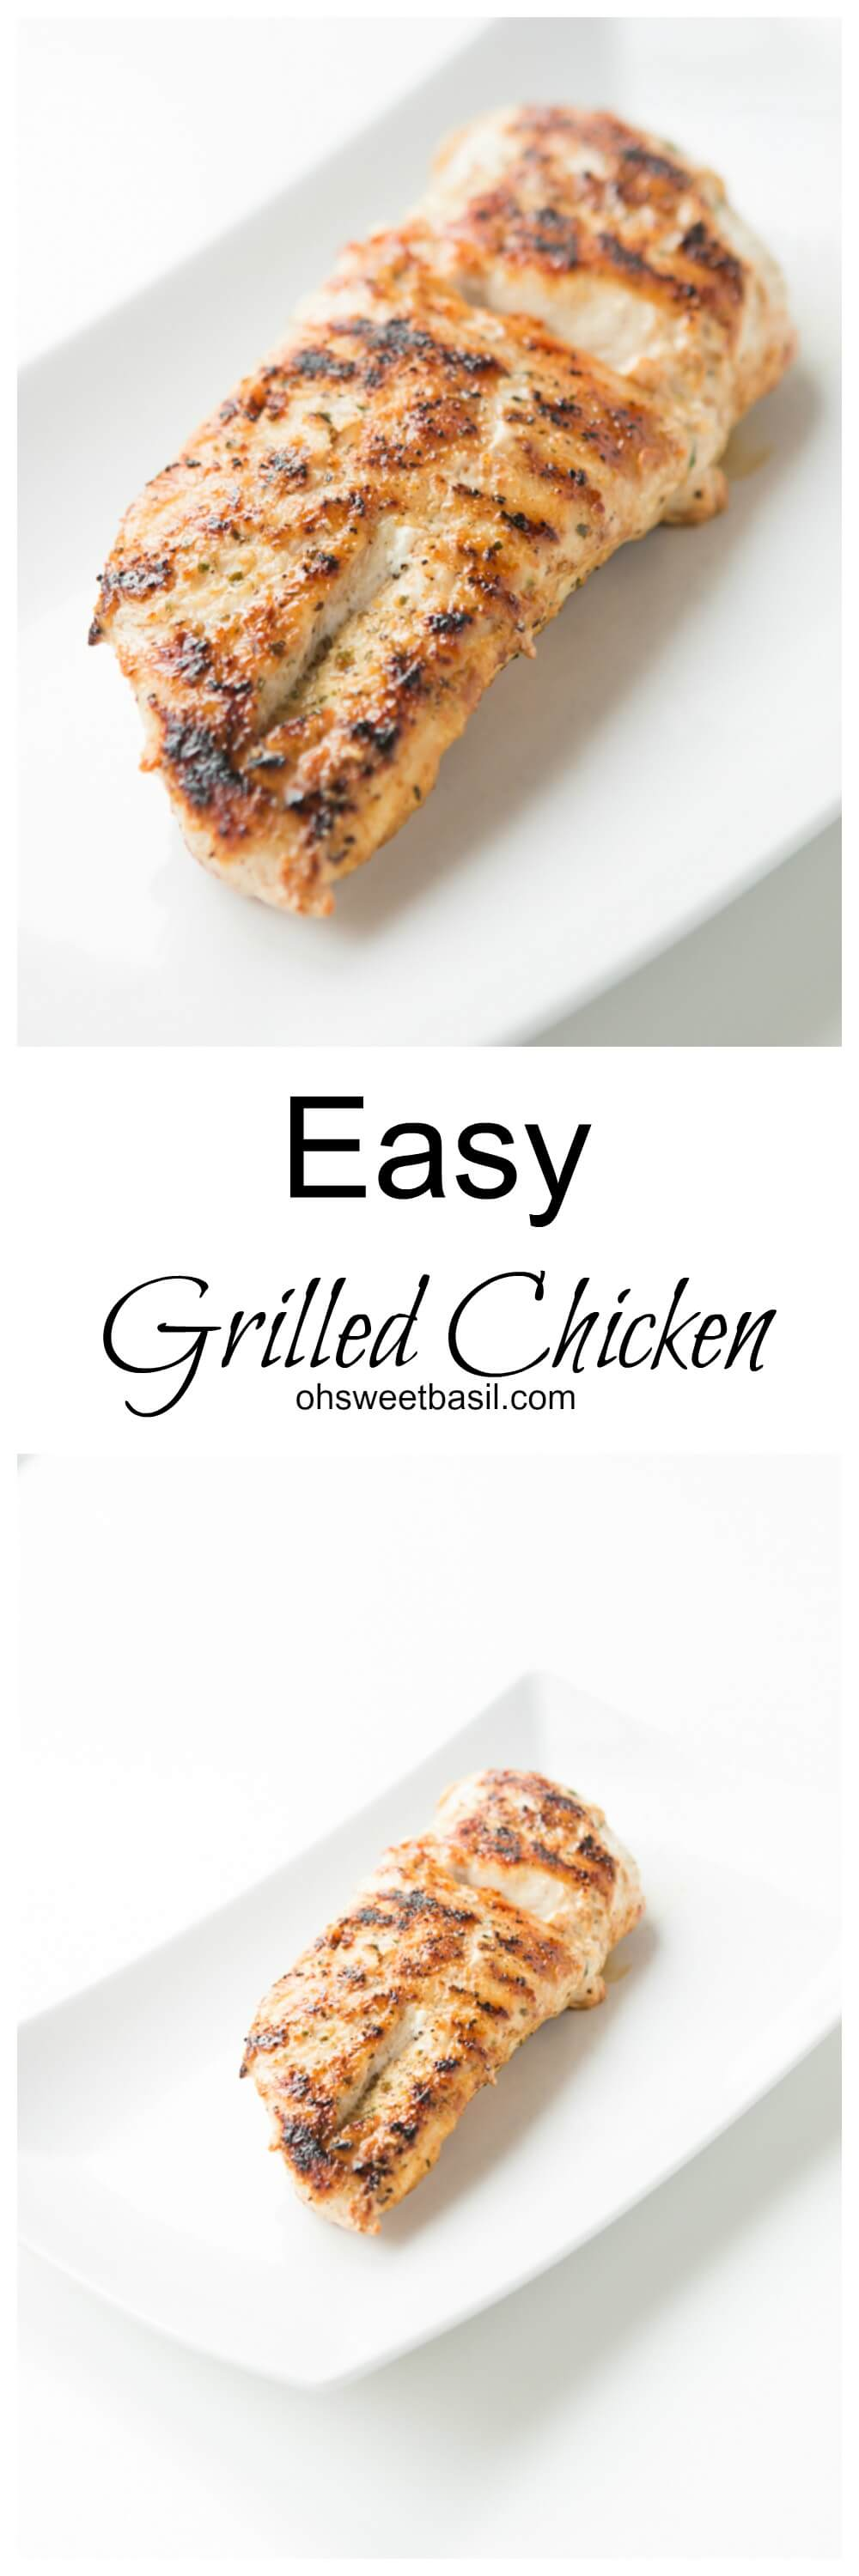 The easiest grilled chicken but still a crowd favorite. Perfect for grilling indoors or outdoors. Ohsweetbasil.com